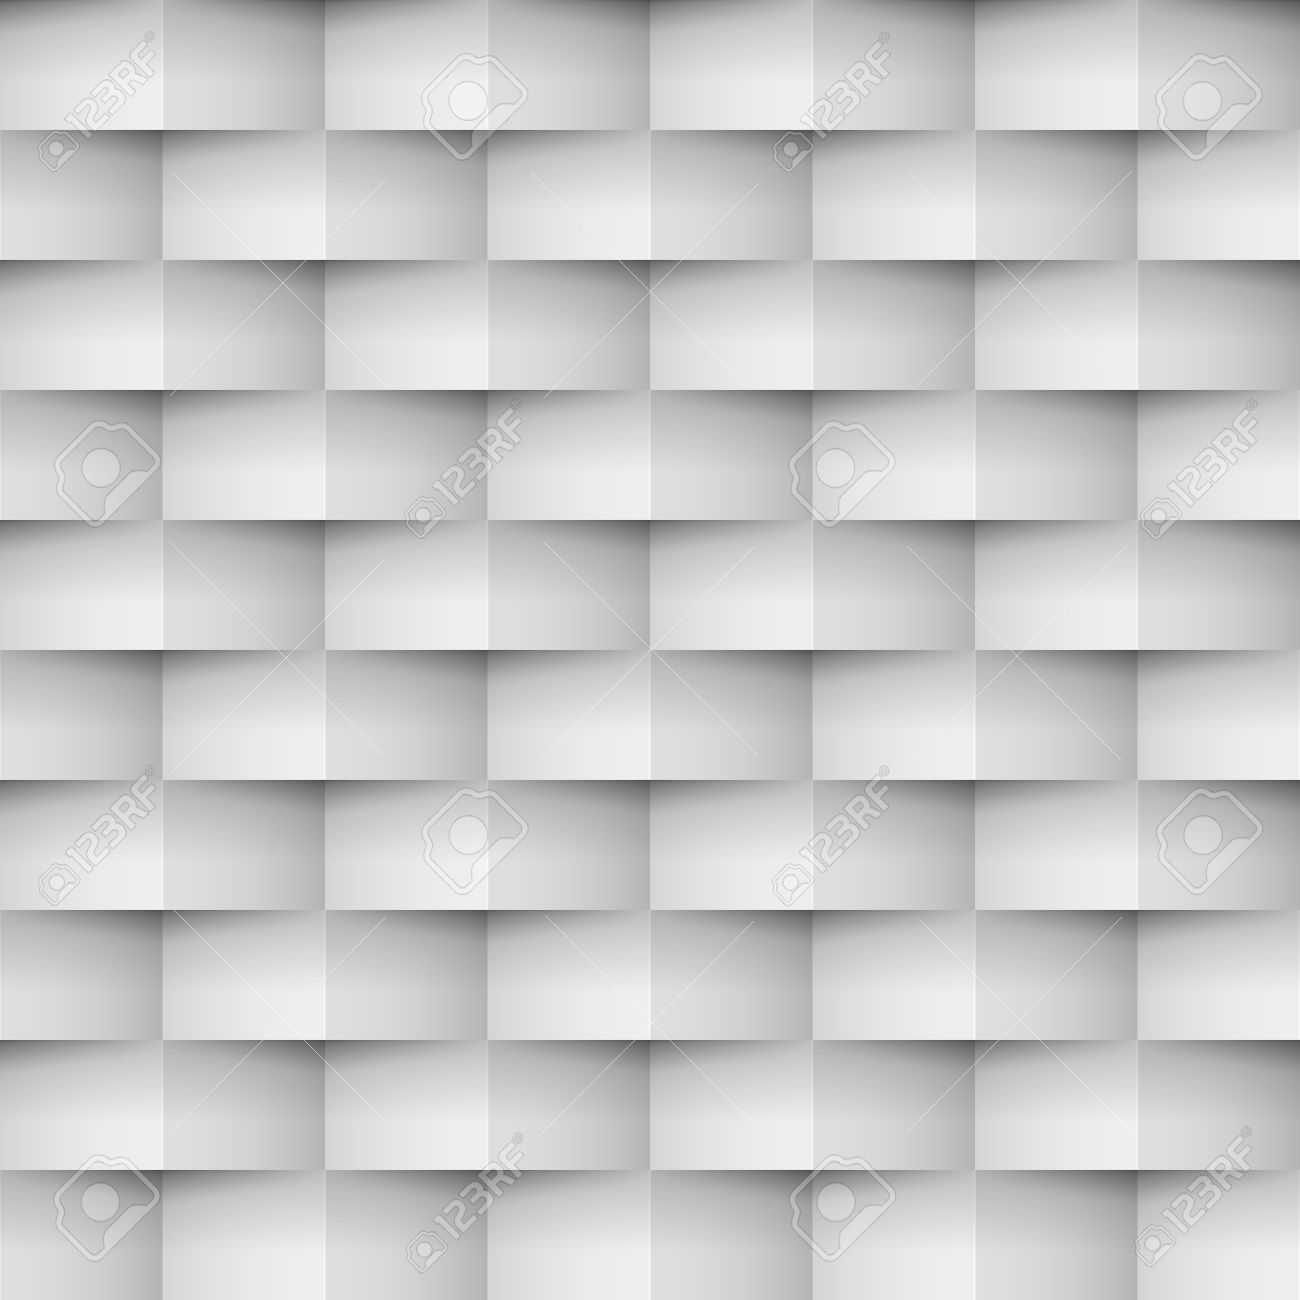 Abstract Cell texture in white. Illustration for creative design Stock Vector - 17755107